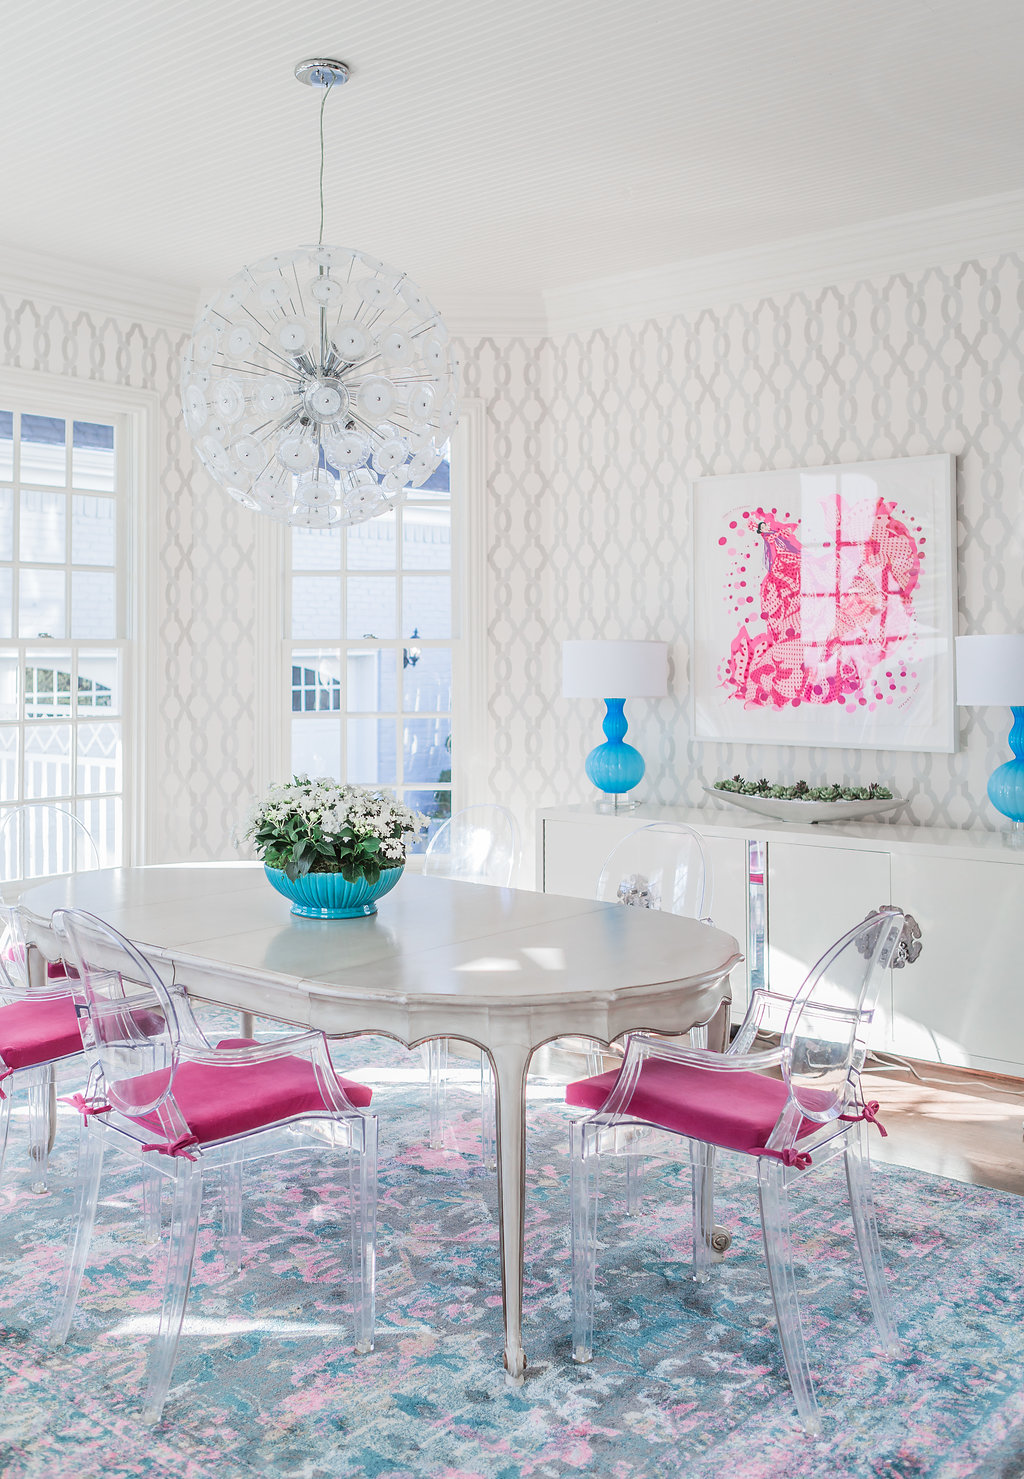 Bright White Breakfast Room, Breakfast Room with Pops of Color, Pink and Turquoise Breakfast Room, Crypton Fabric Sofa, Crypton Fabric Chair cushions, Kartel Ghost Chair, Transitional Breakfast Room